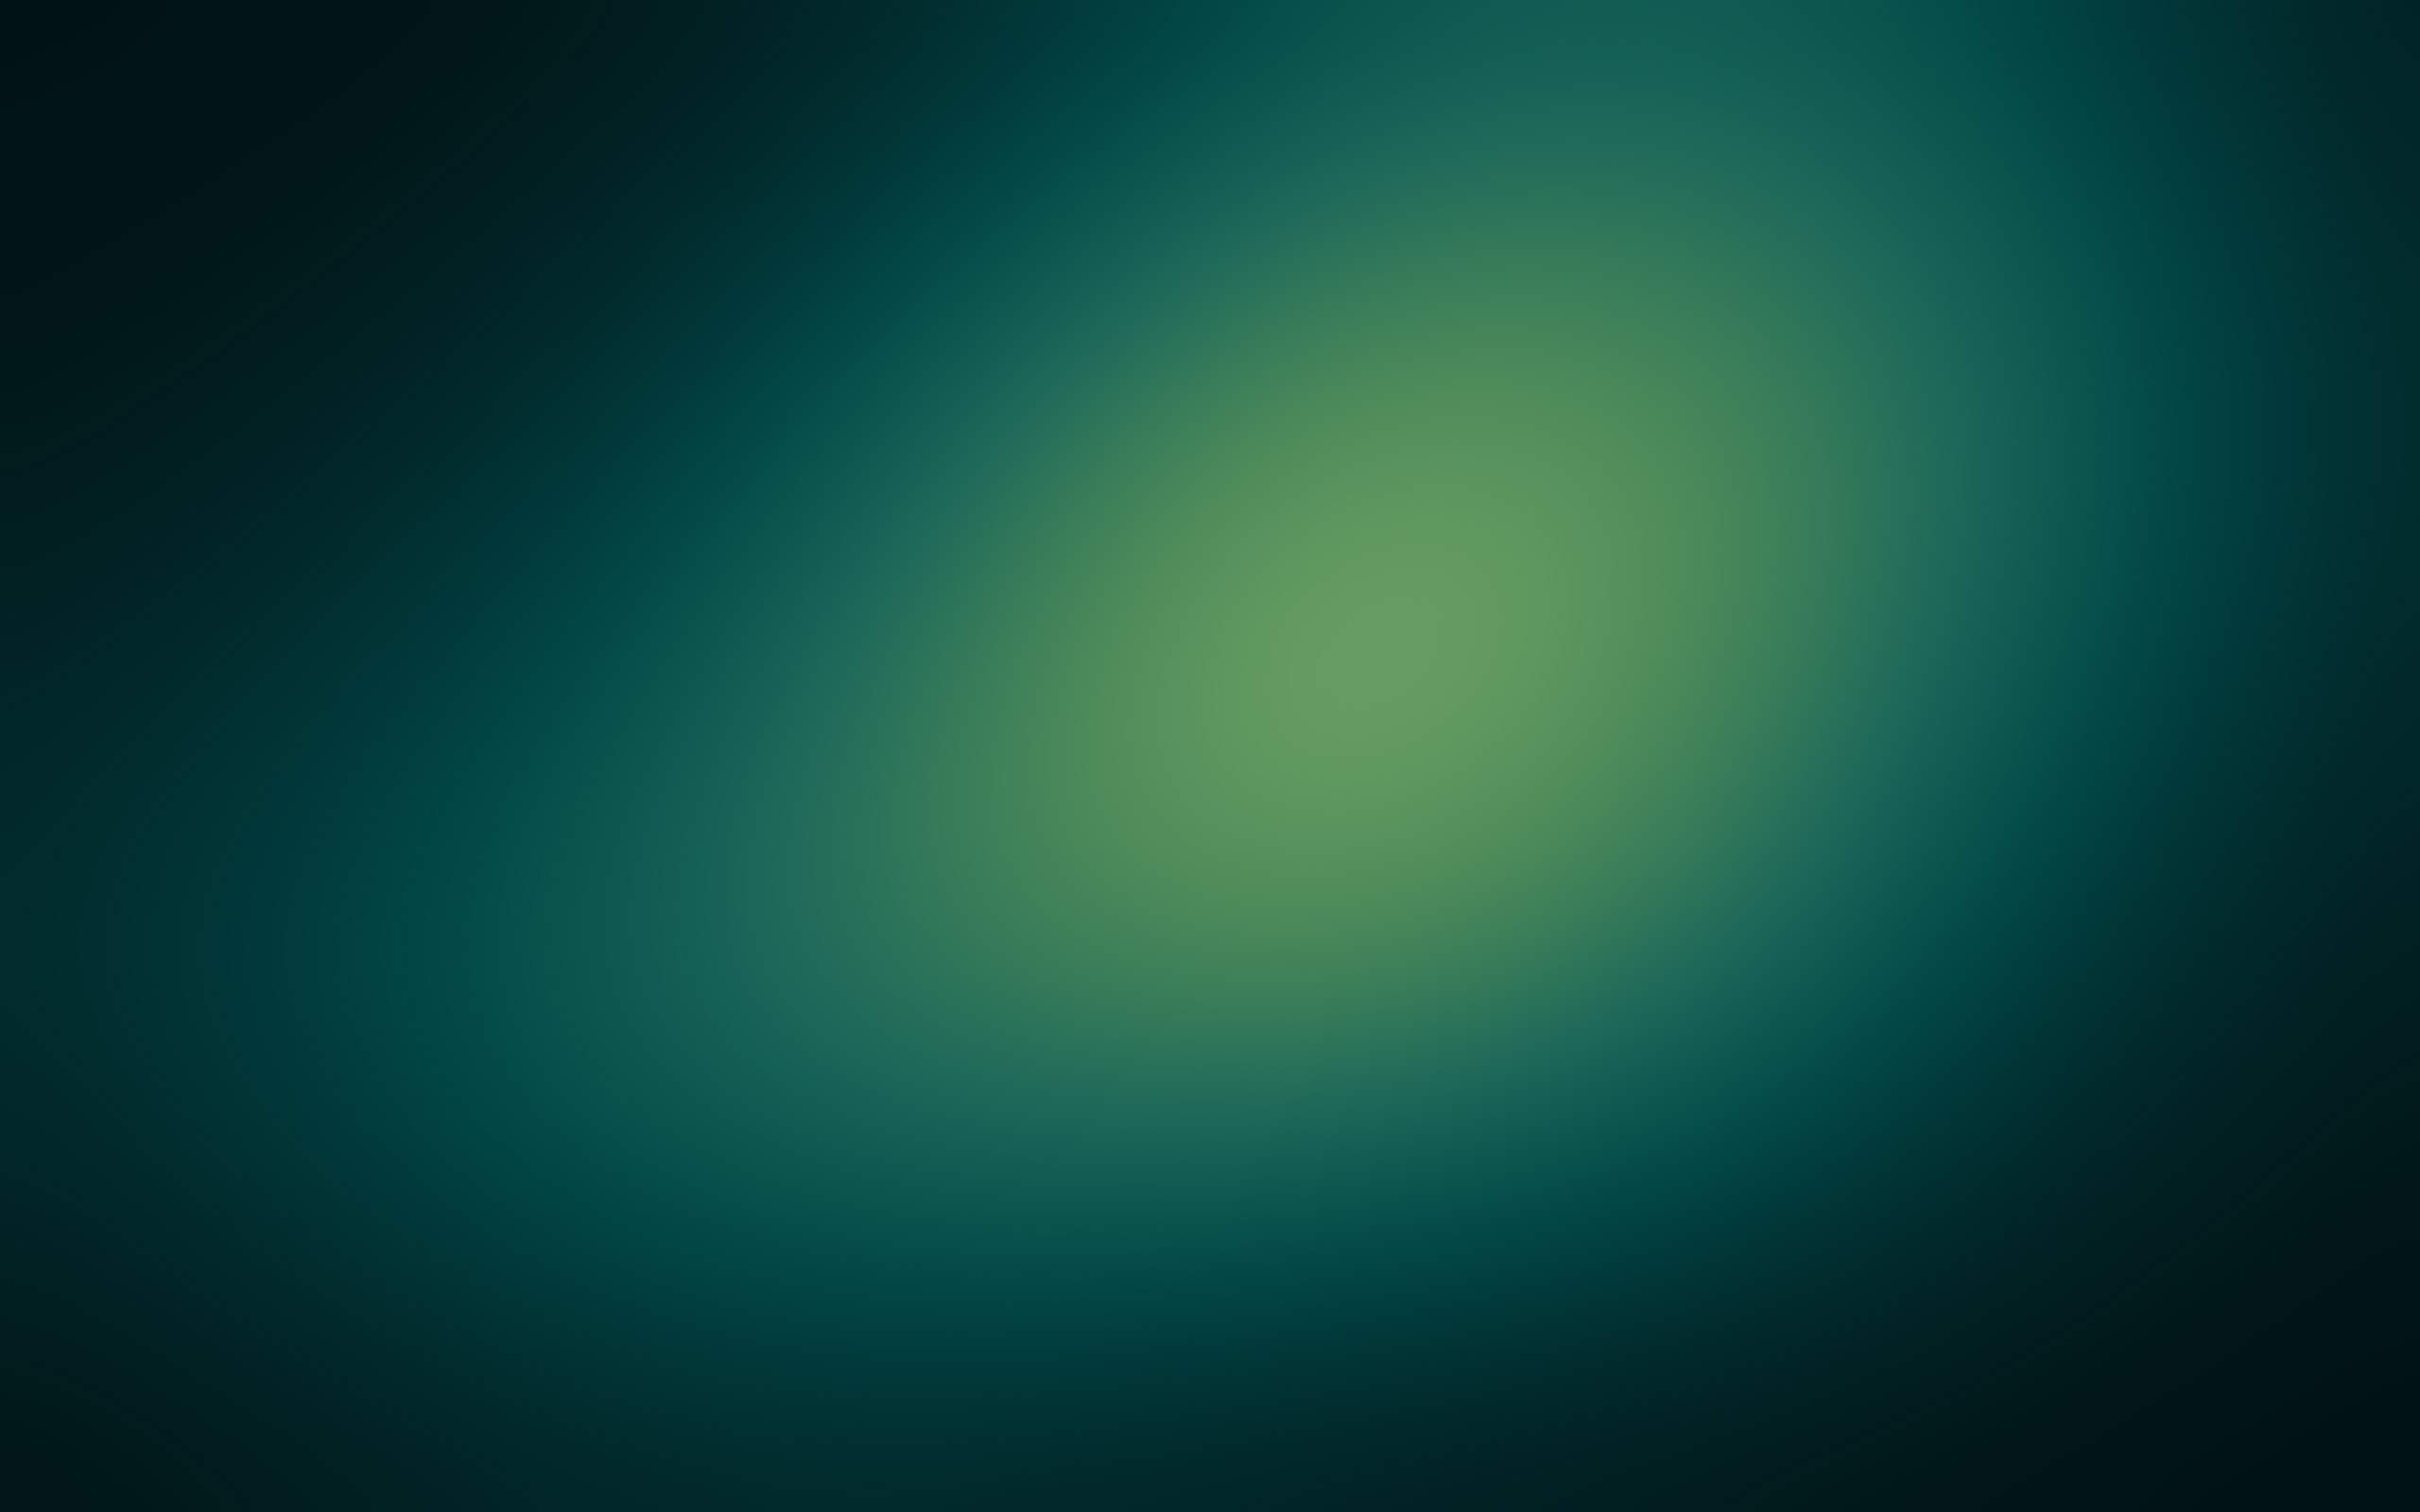 Central Part Light Green the Four Edges Dark Green Green Can be 2560x1600